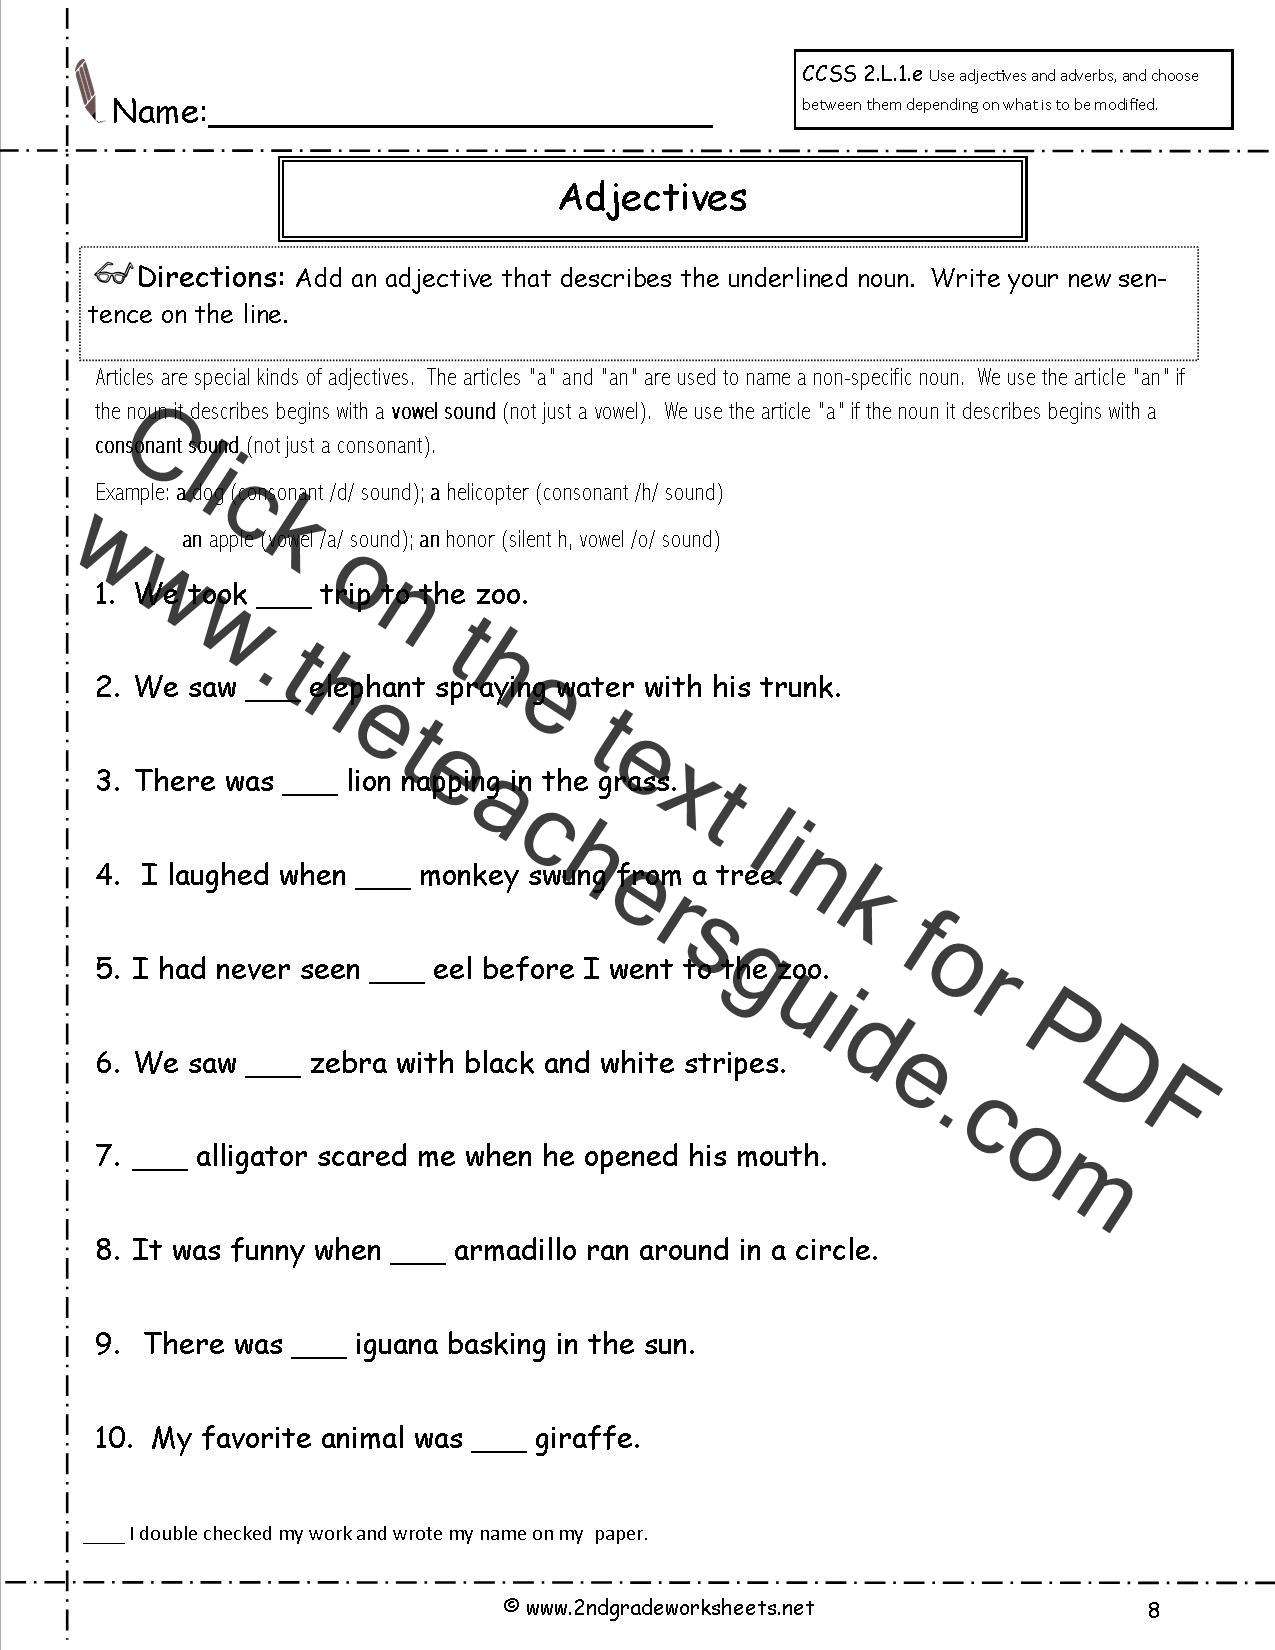 Printables Dol Worksheets free languagegrammar worksheets and printouts adjectives worksheets